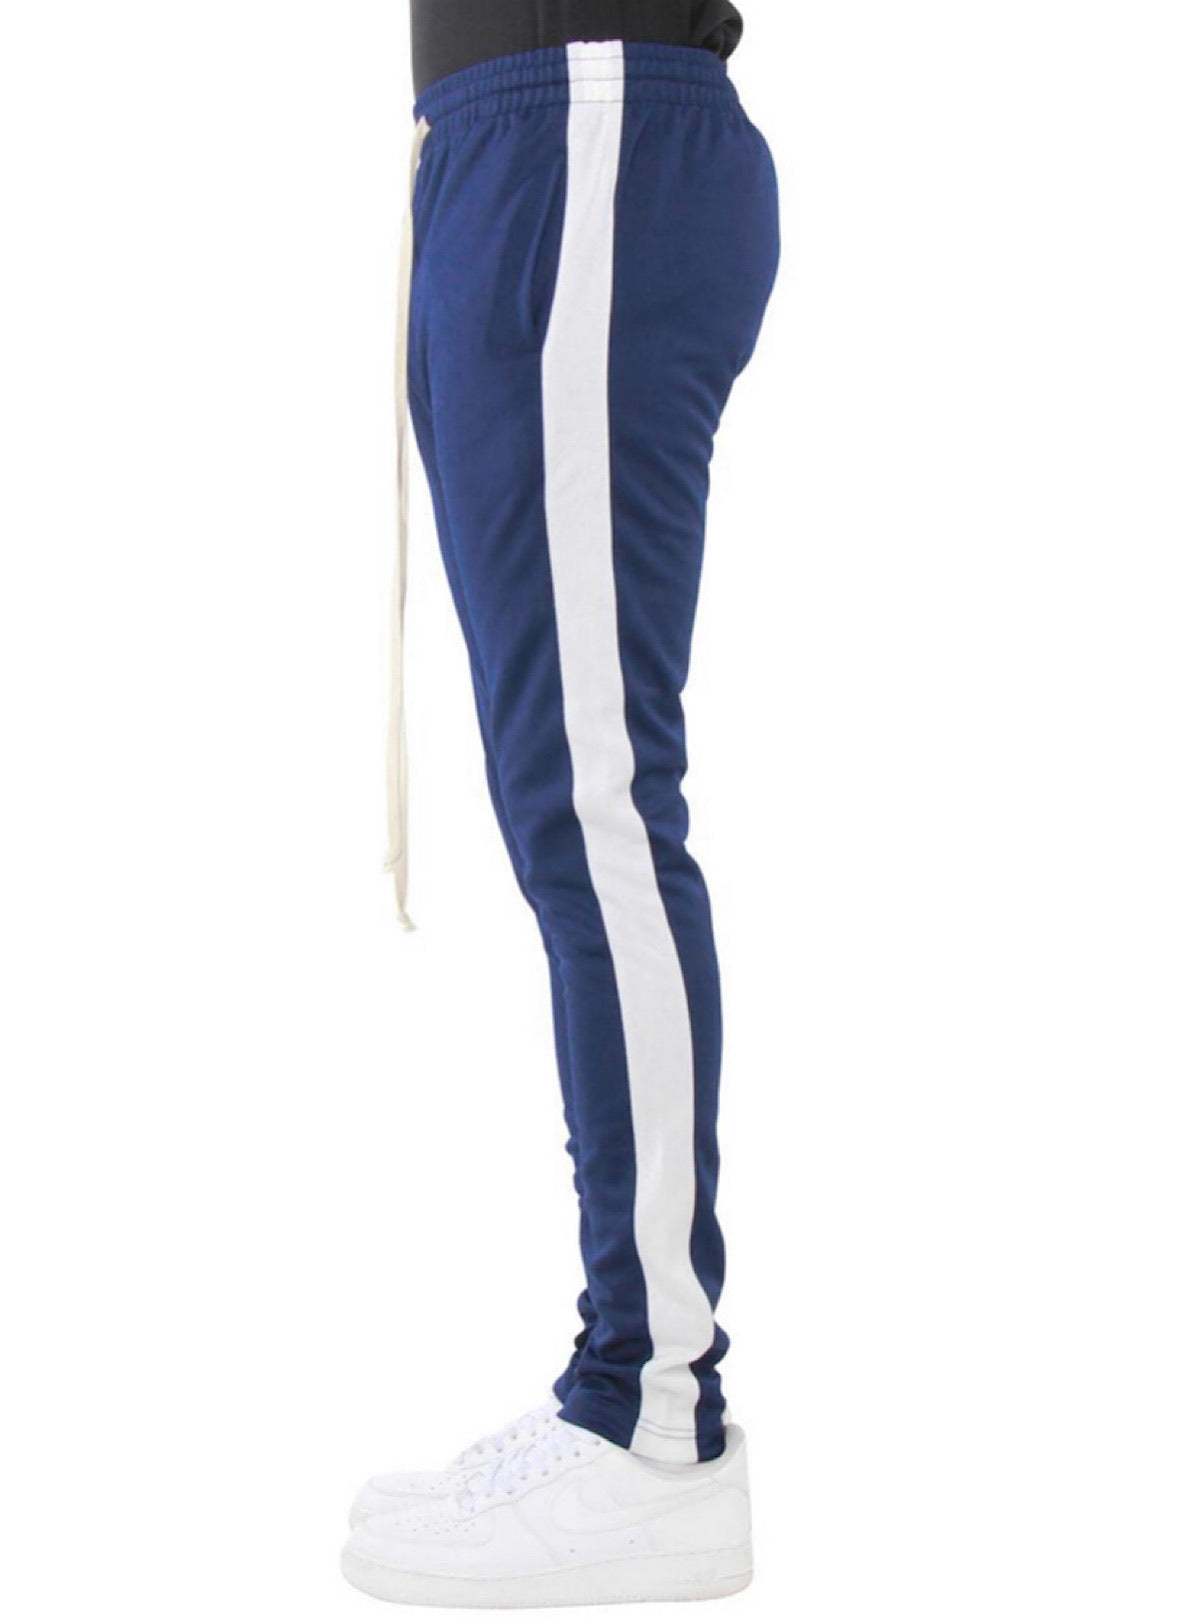 EPTM Track Pants - Navy And Ivory - EP7732